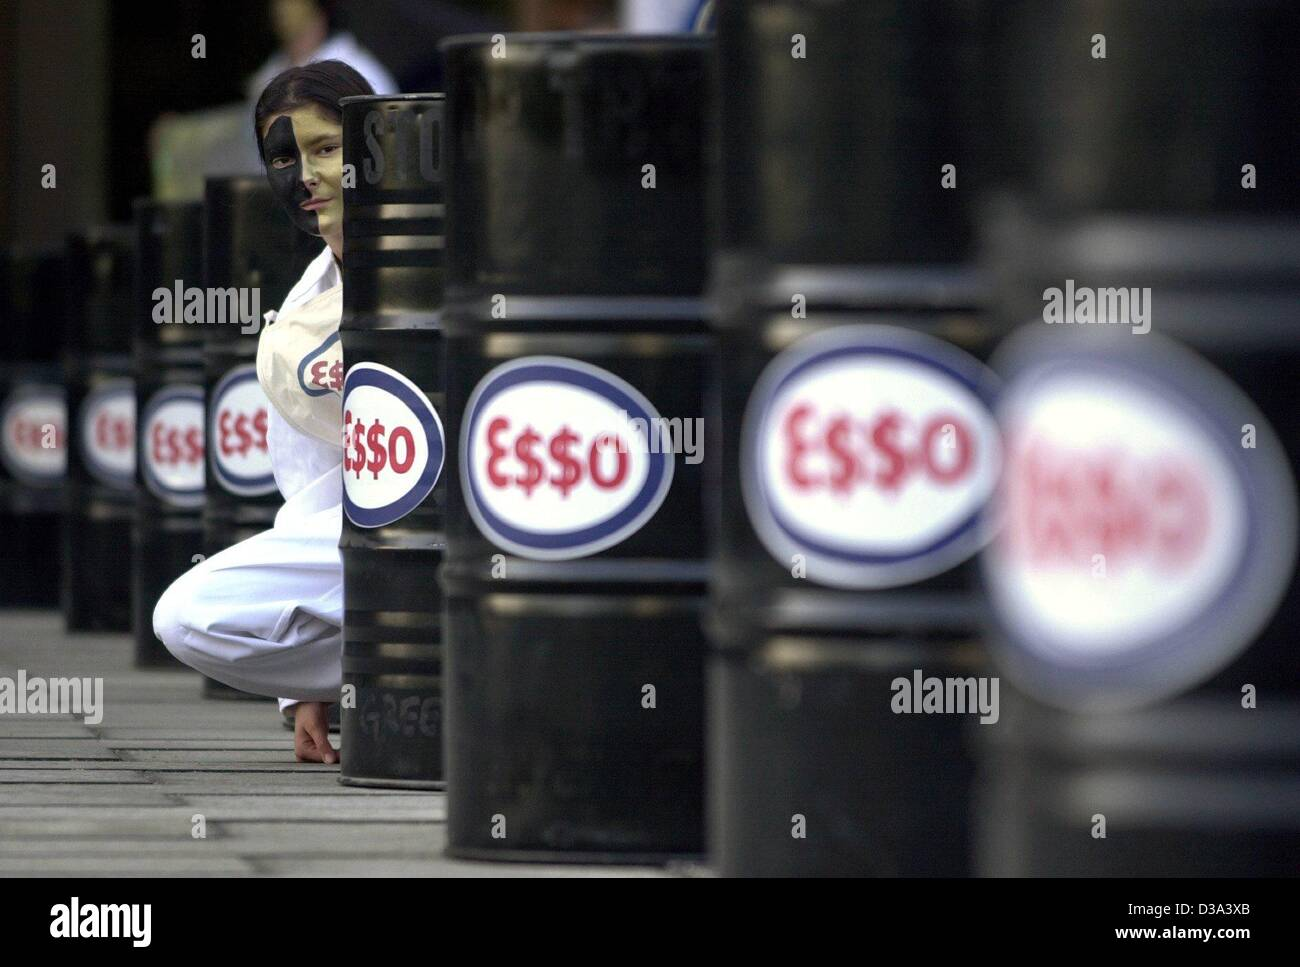 (dpa) - A Greenpeace activist sits behind the oil barrels with the logo E$$O of the company Exxon Mobil during a - Stock Image